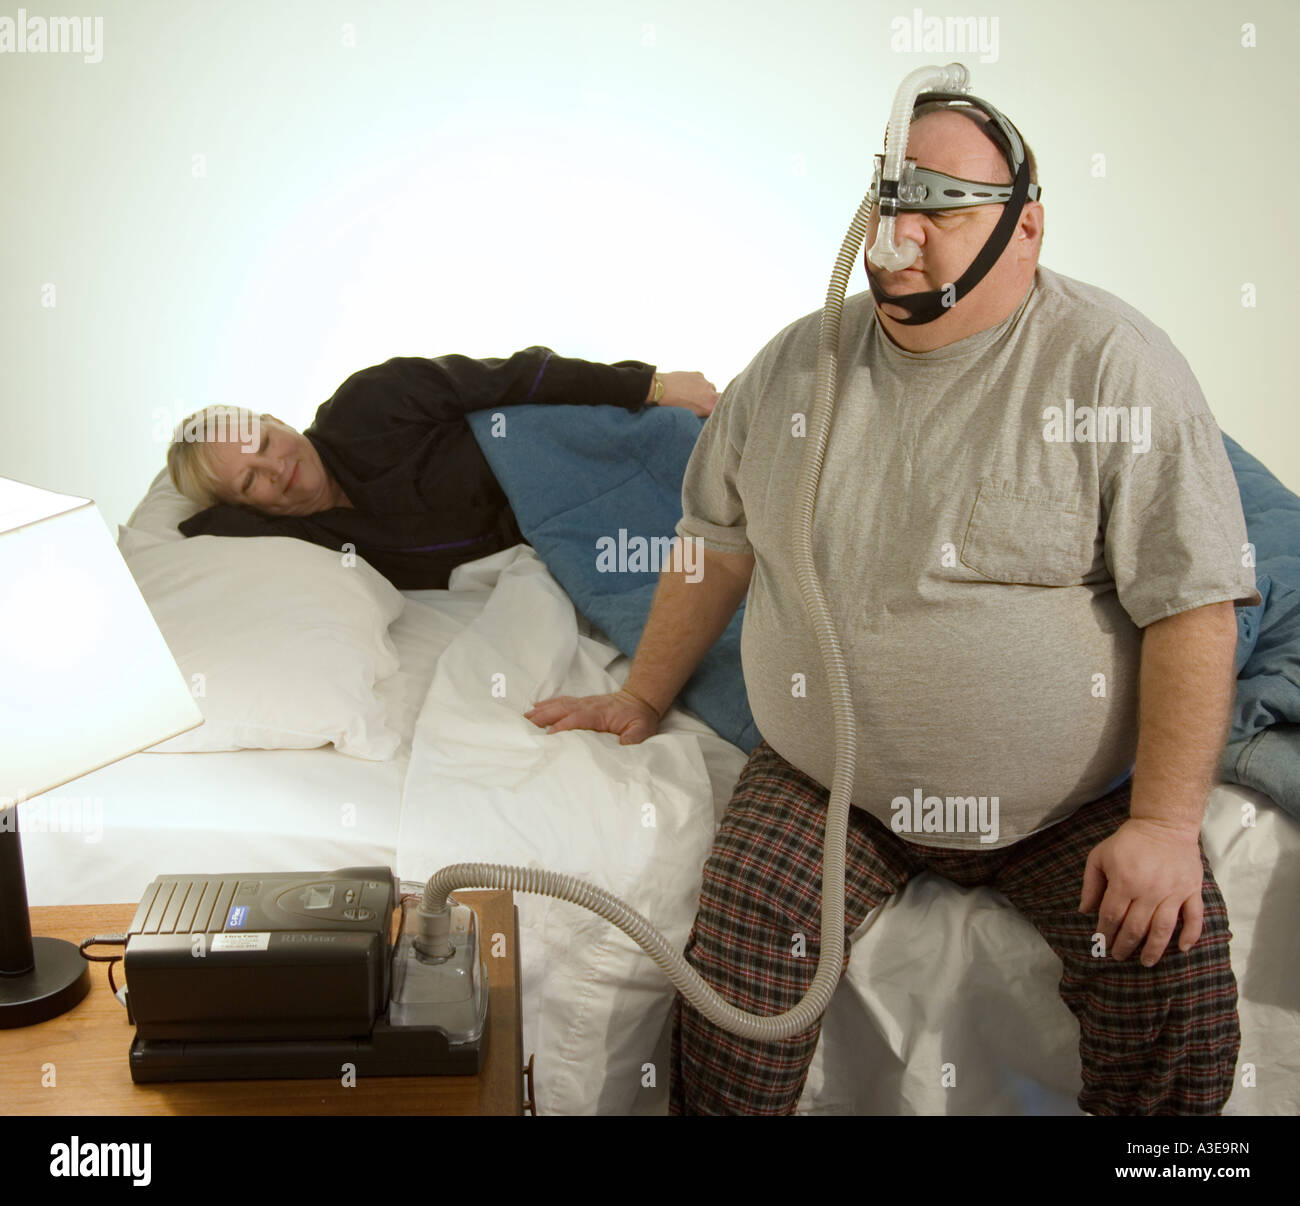 sleep apnea machine images